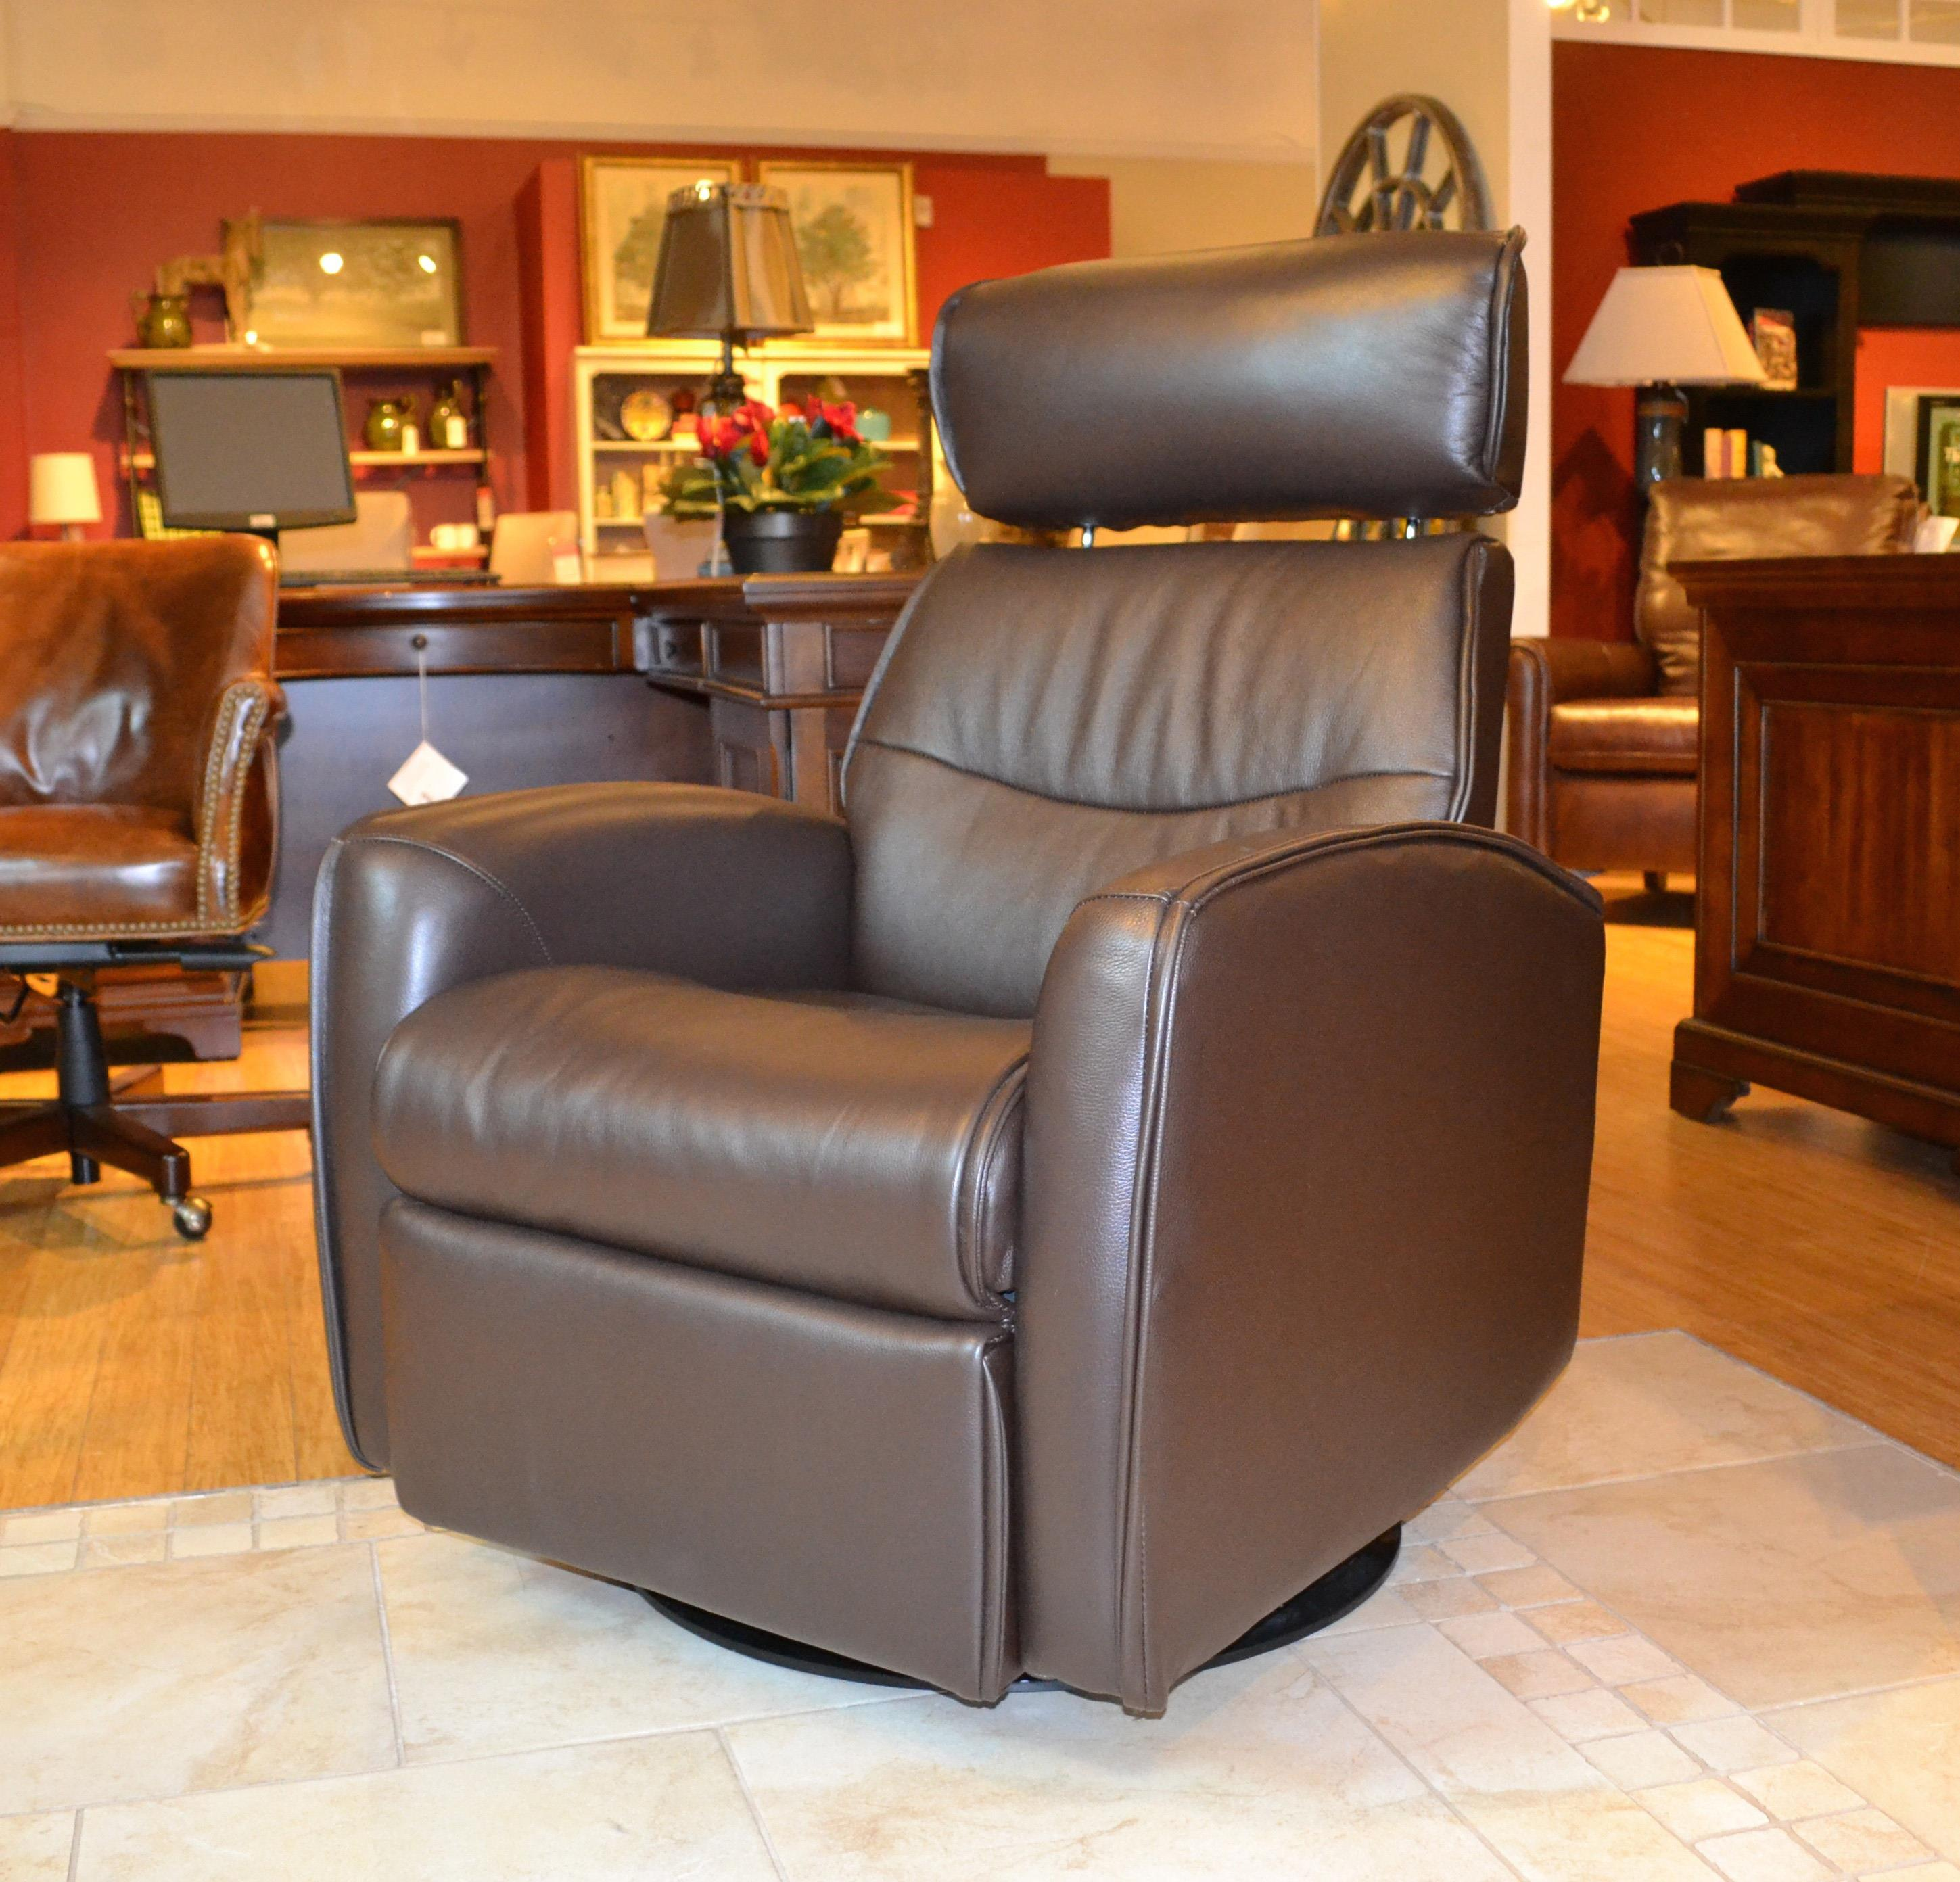 Synergy Home Furnishings 1235 Casual Recliner - Item Number: 986528766